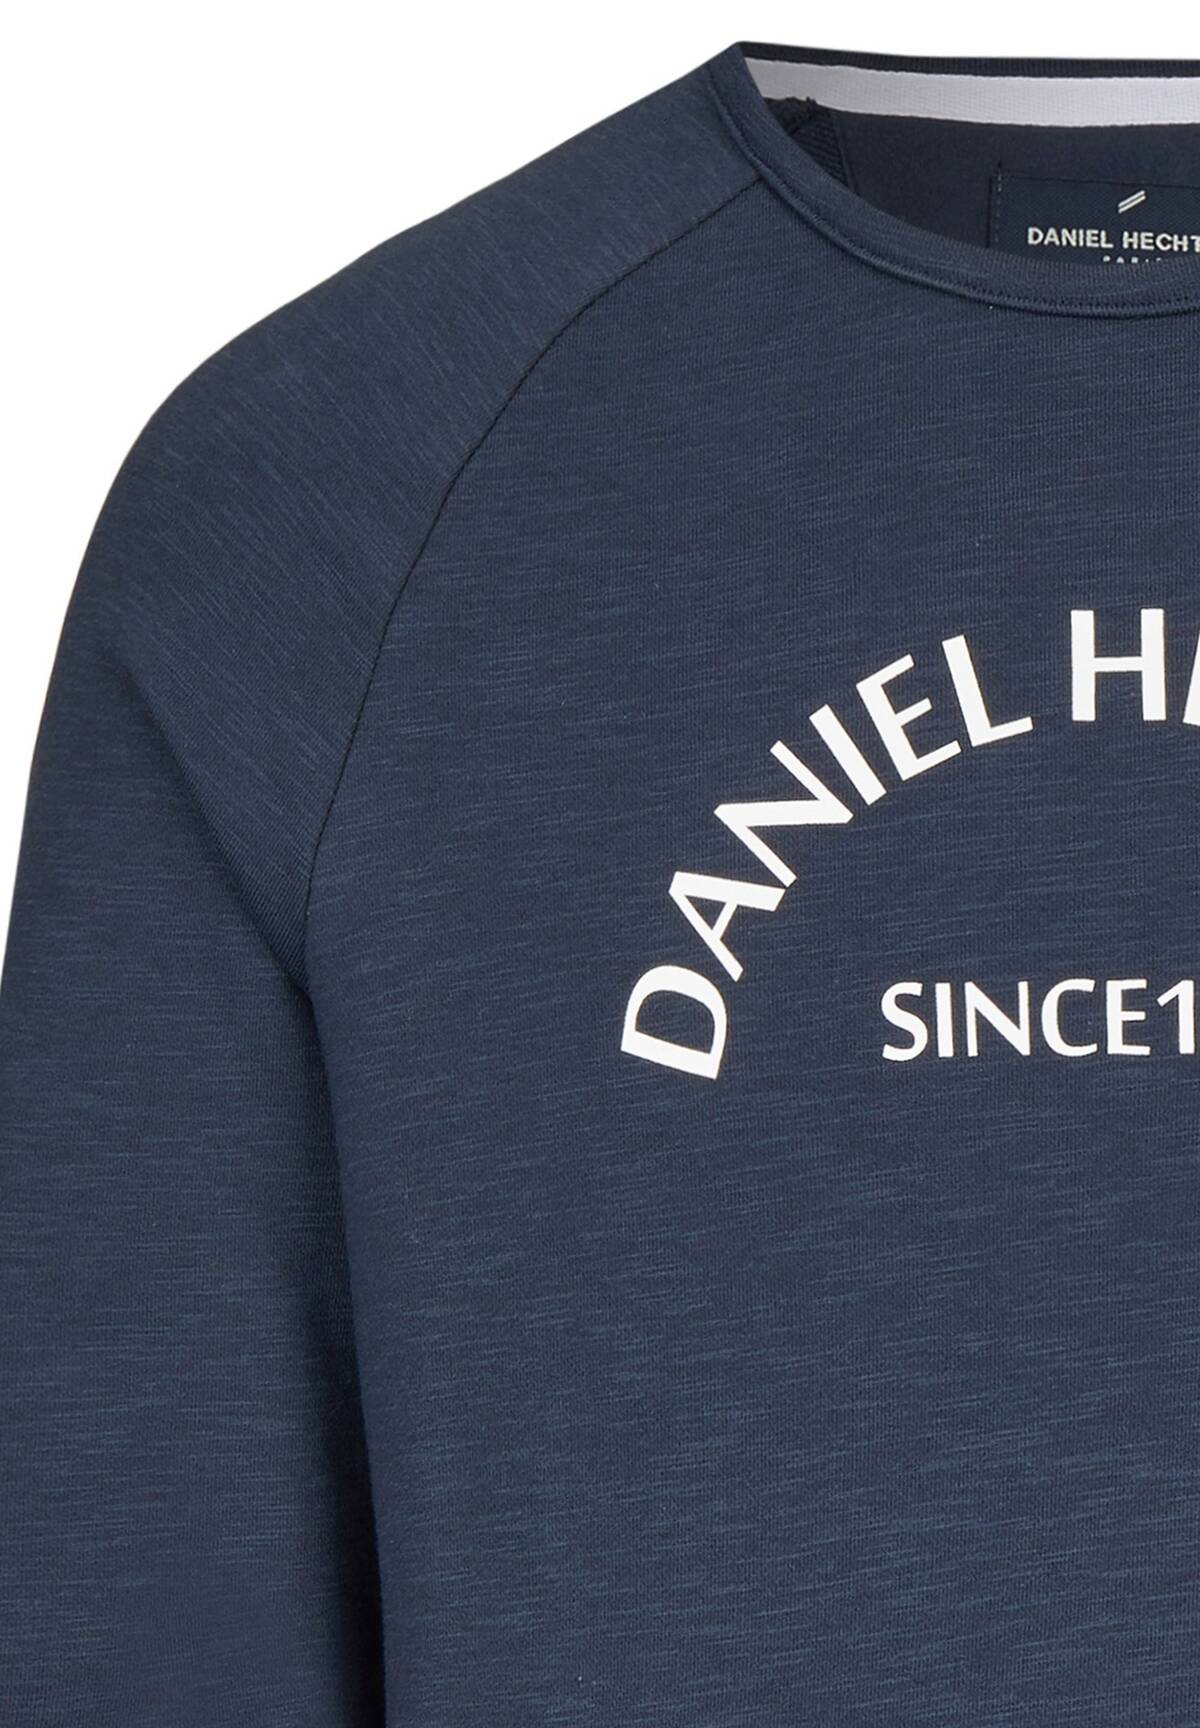 Sweat shirt DANIEL HECHTER 1962 /